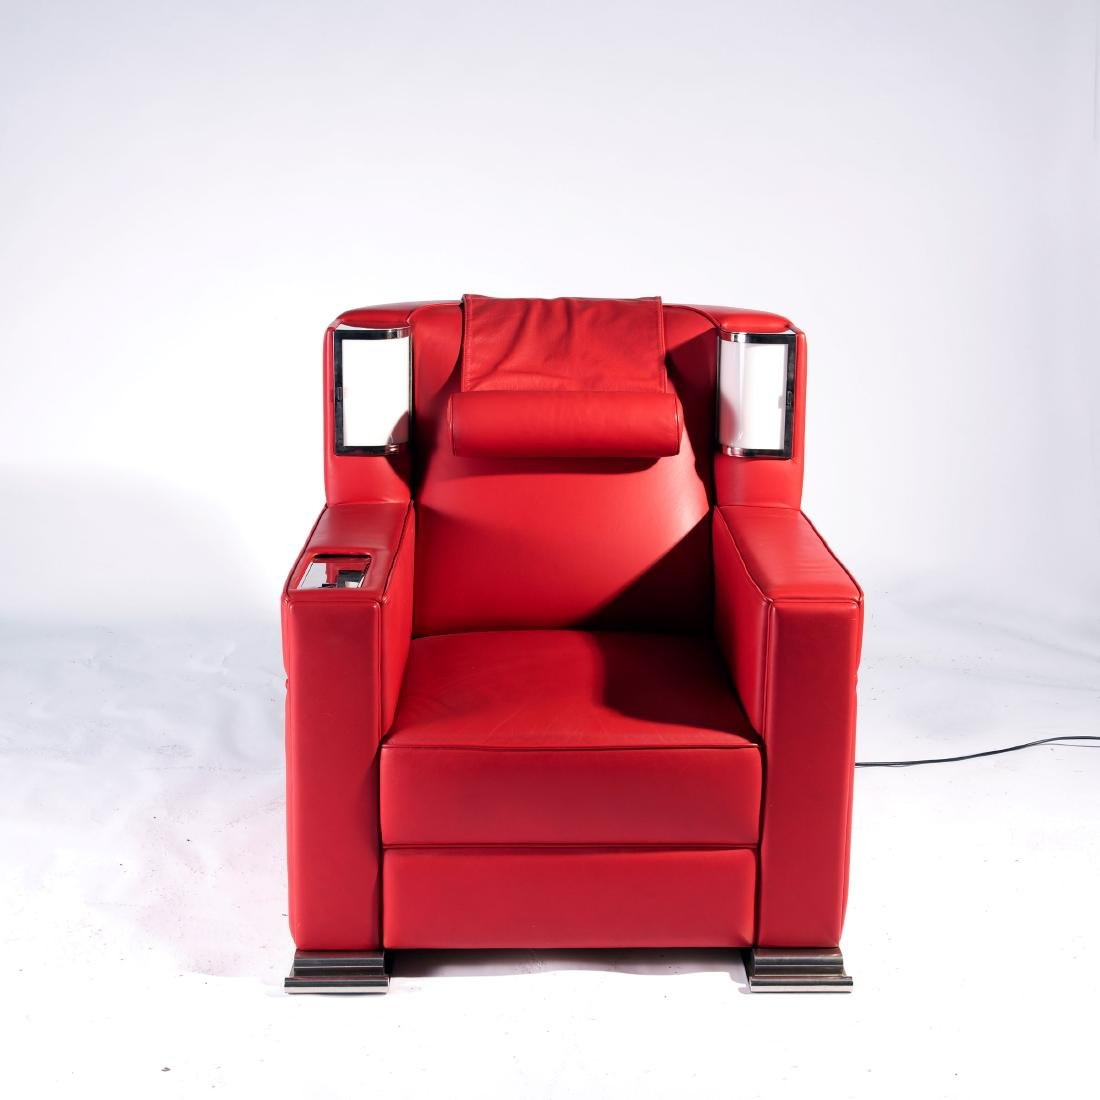 'Red comfortable chair', 1931 - 3